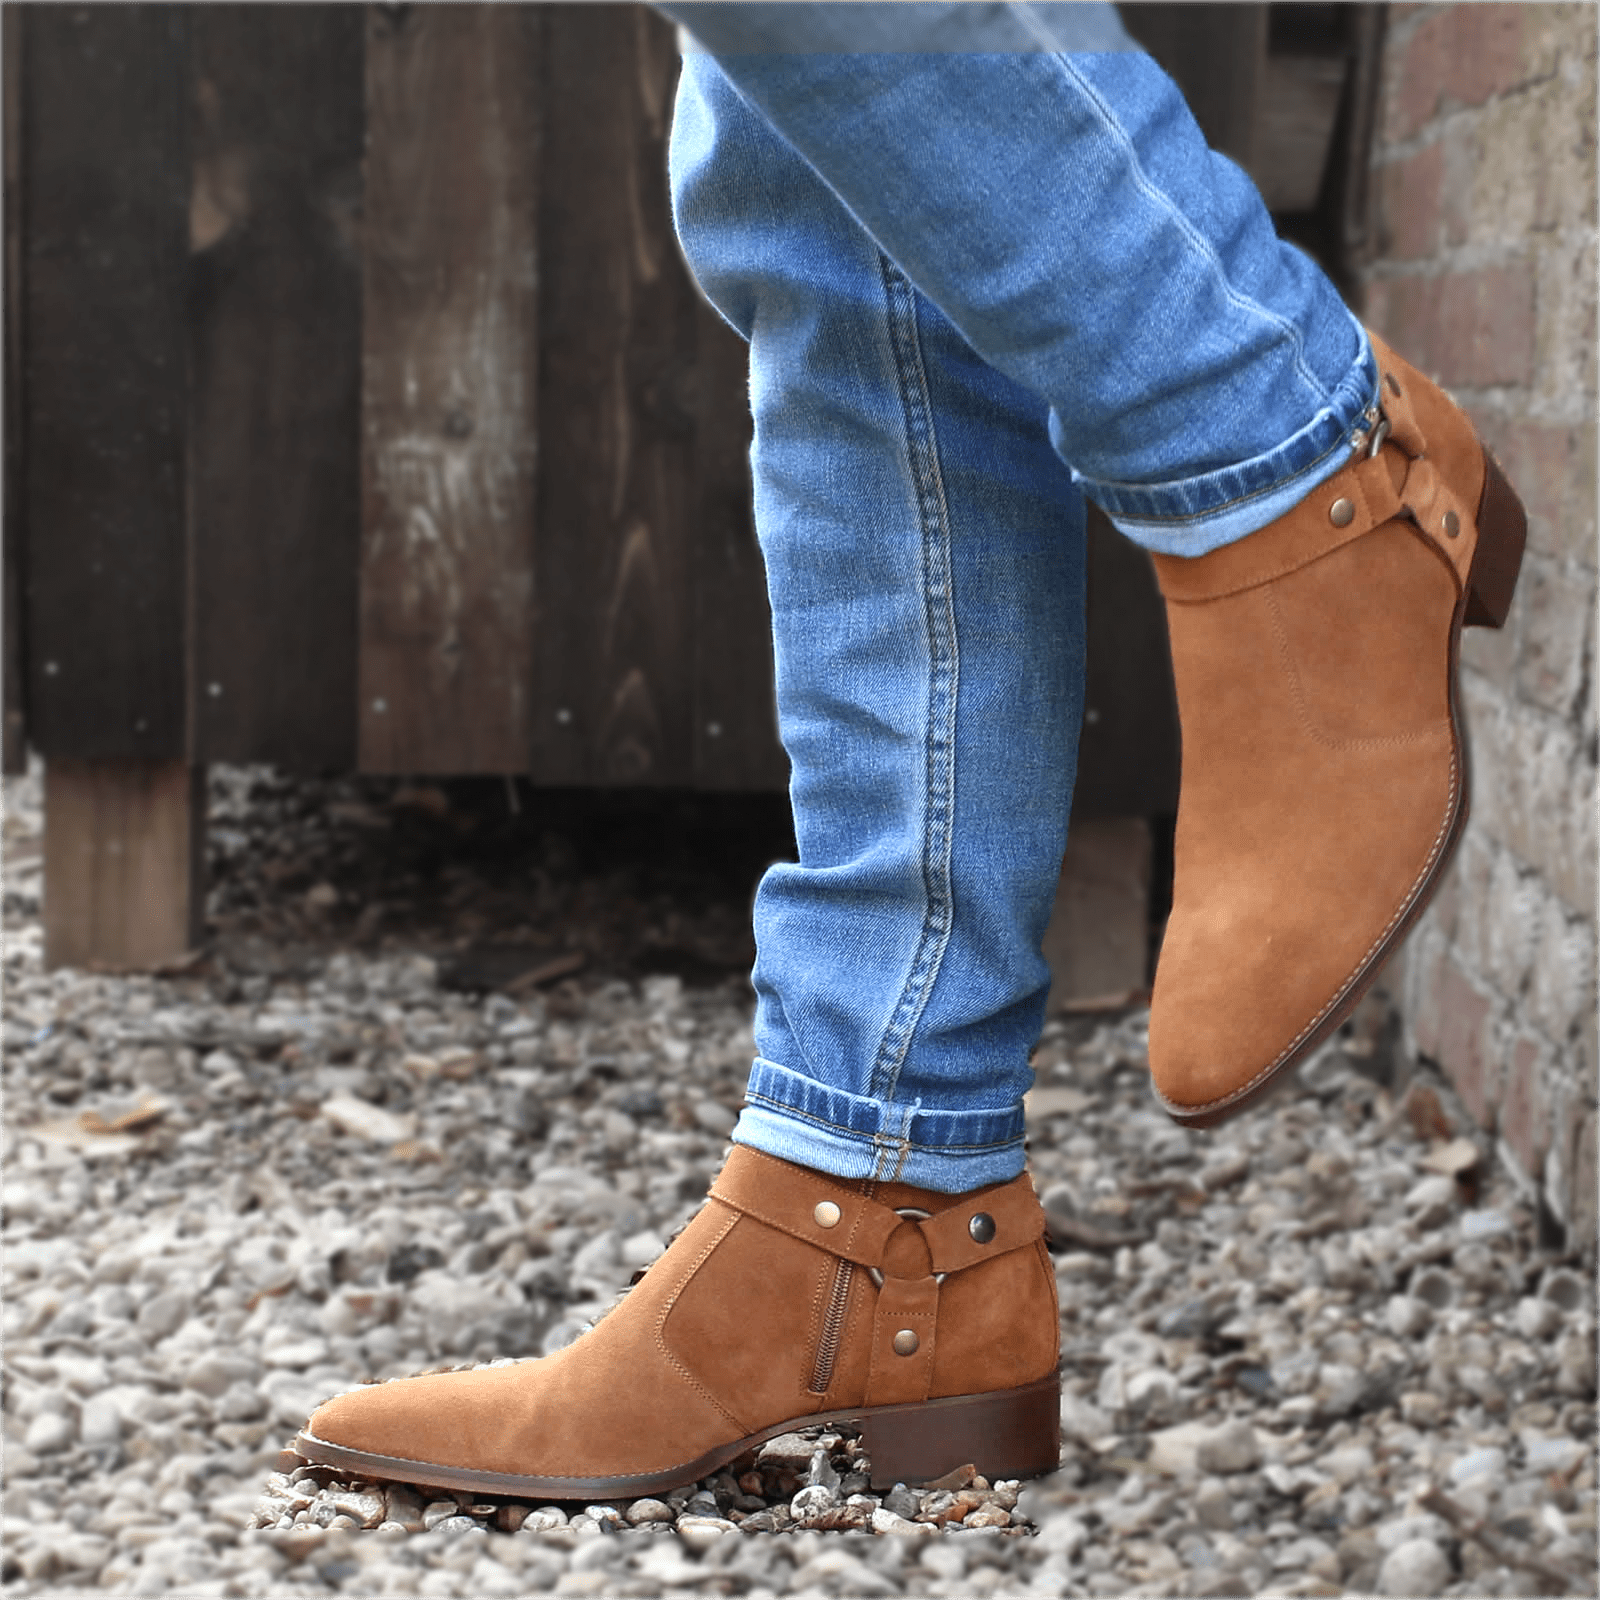 Customizable Men/'s Handcrafted Harness Zip Calf Boots Real Suede Silhouettes